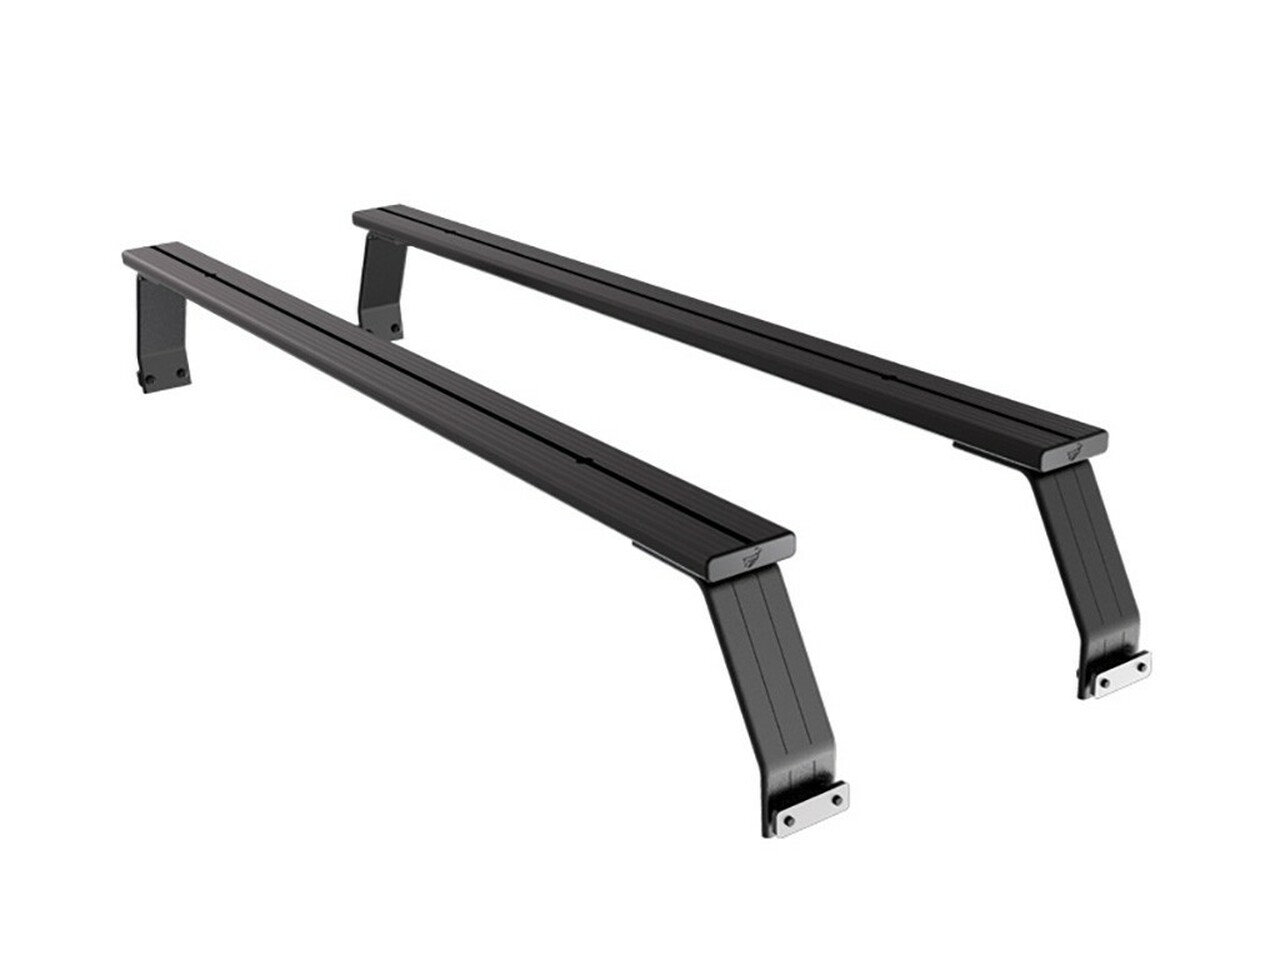 Load Bed Load Bars kit (Tacoma 2005 +)